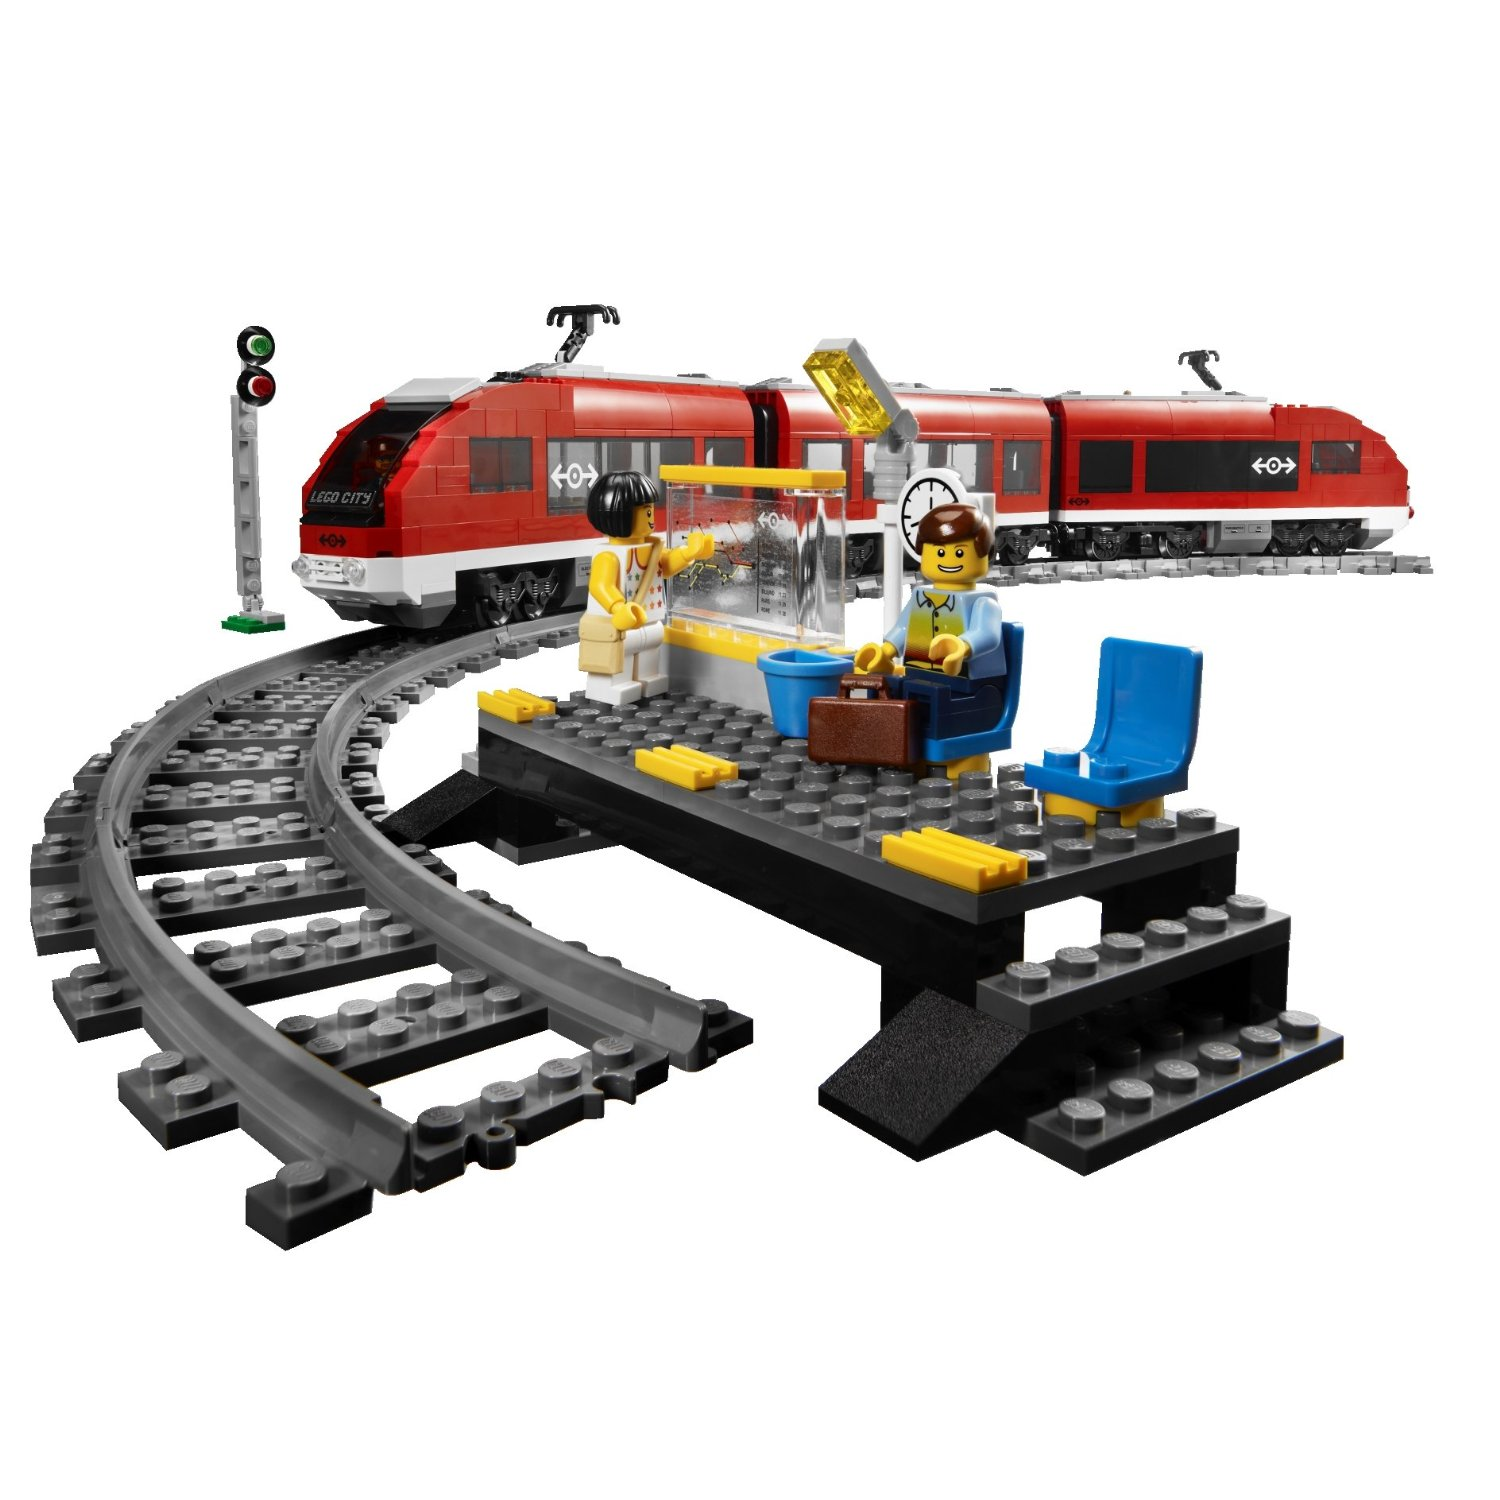 Lego City Passenger Train 7938 onetwobricks: LEGO set...